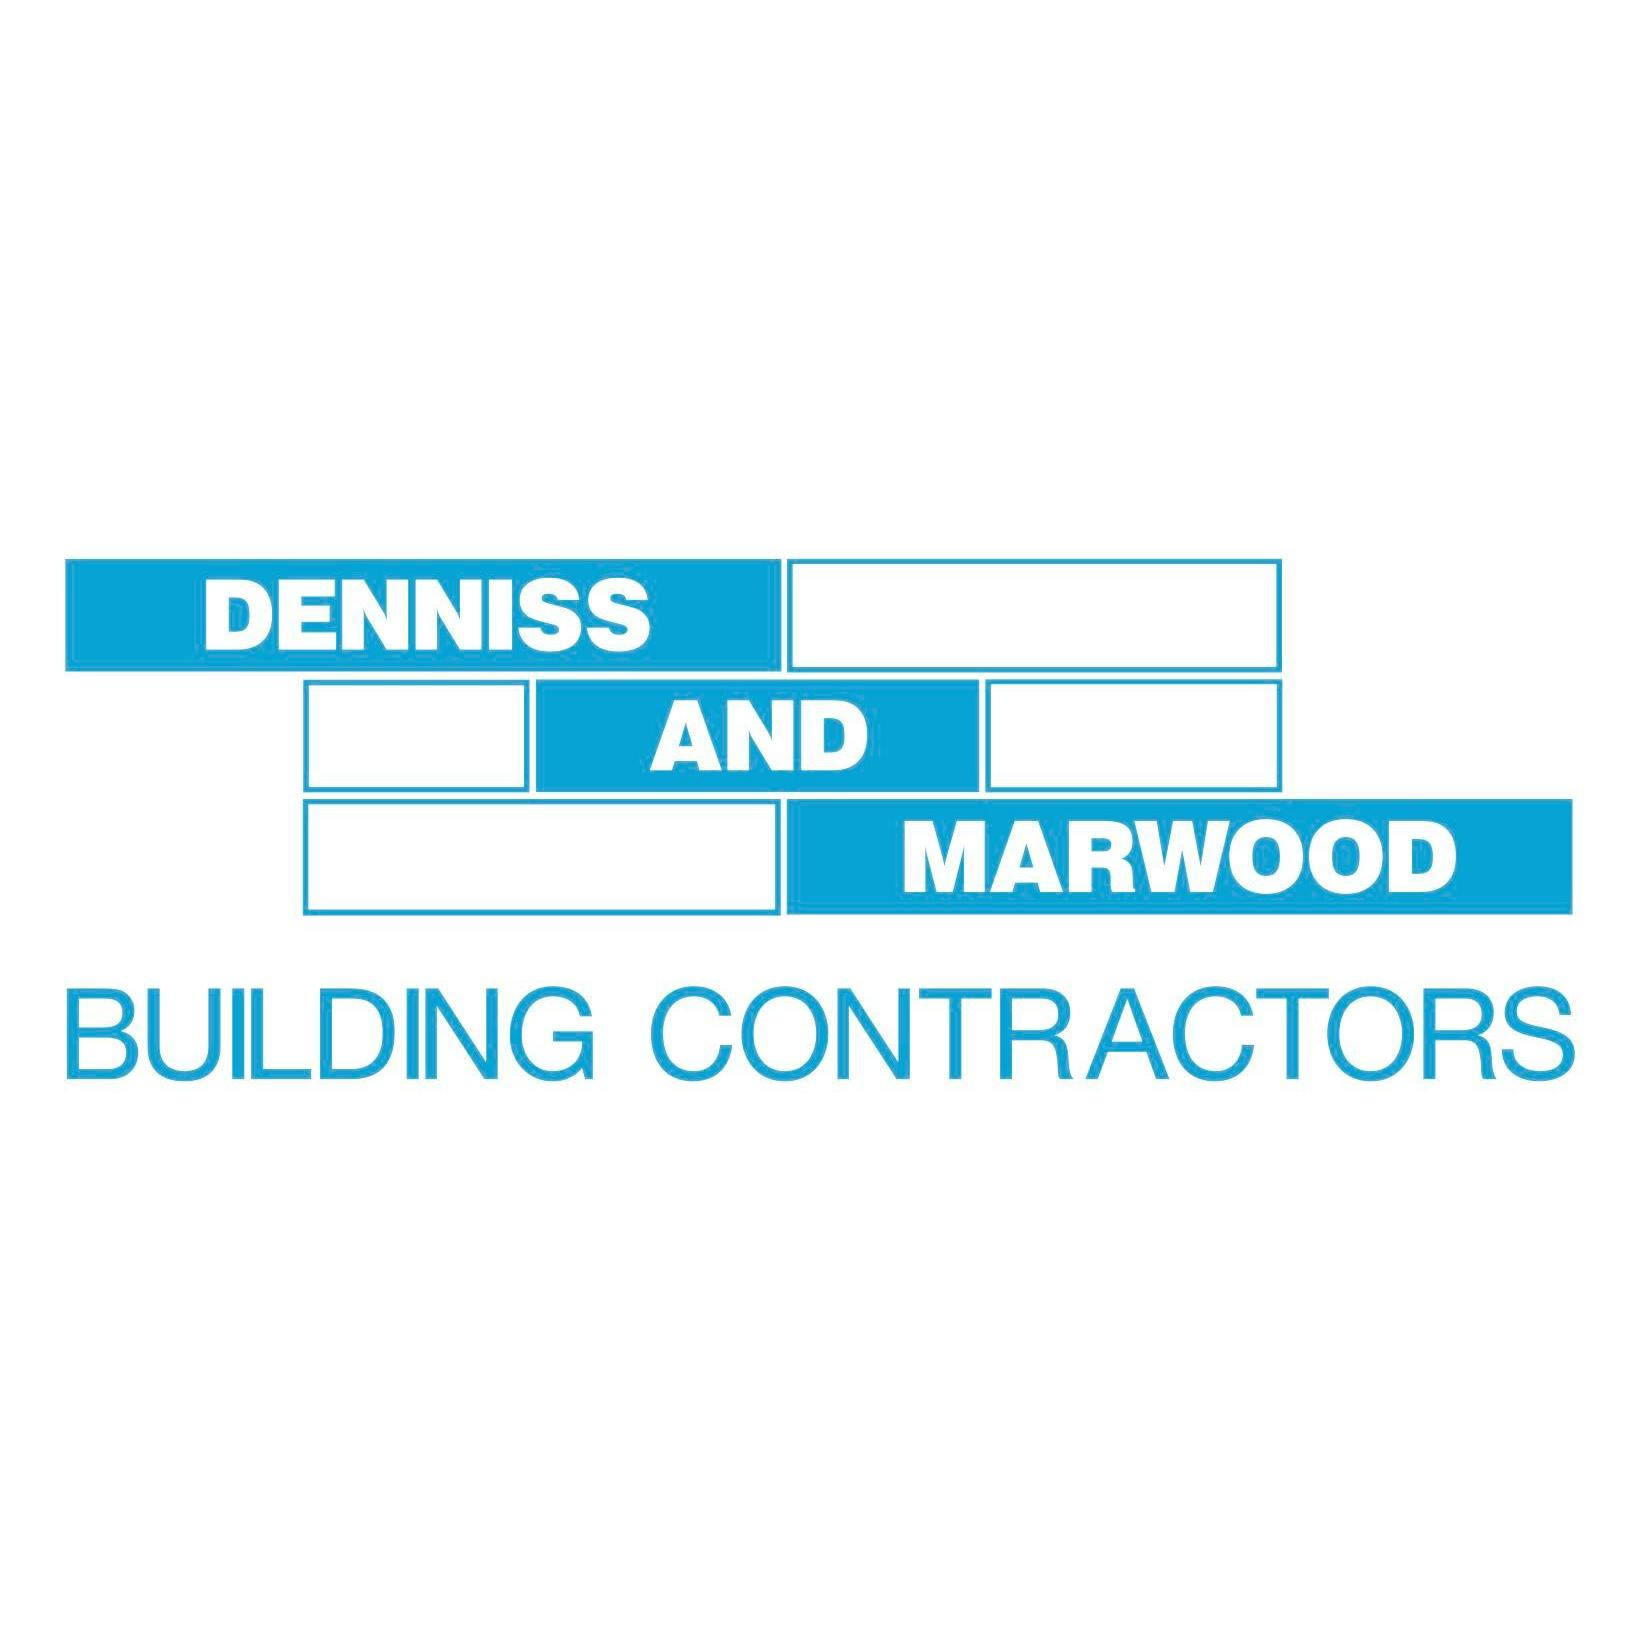 Denniss & Marwood - Louth, Lincolnshire LN11 0ZR - 01507 602625 | ShowMeLocal.com